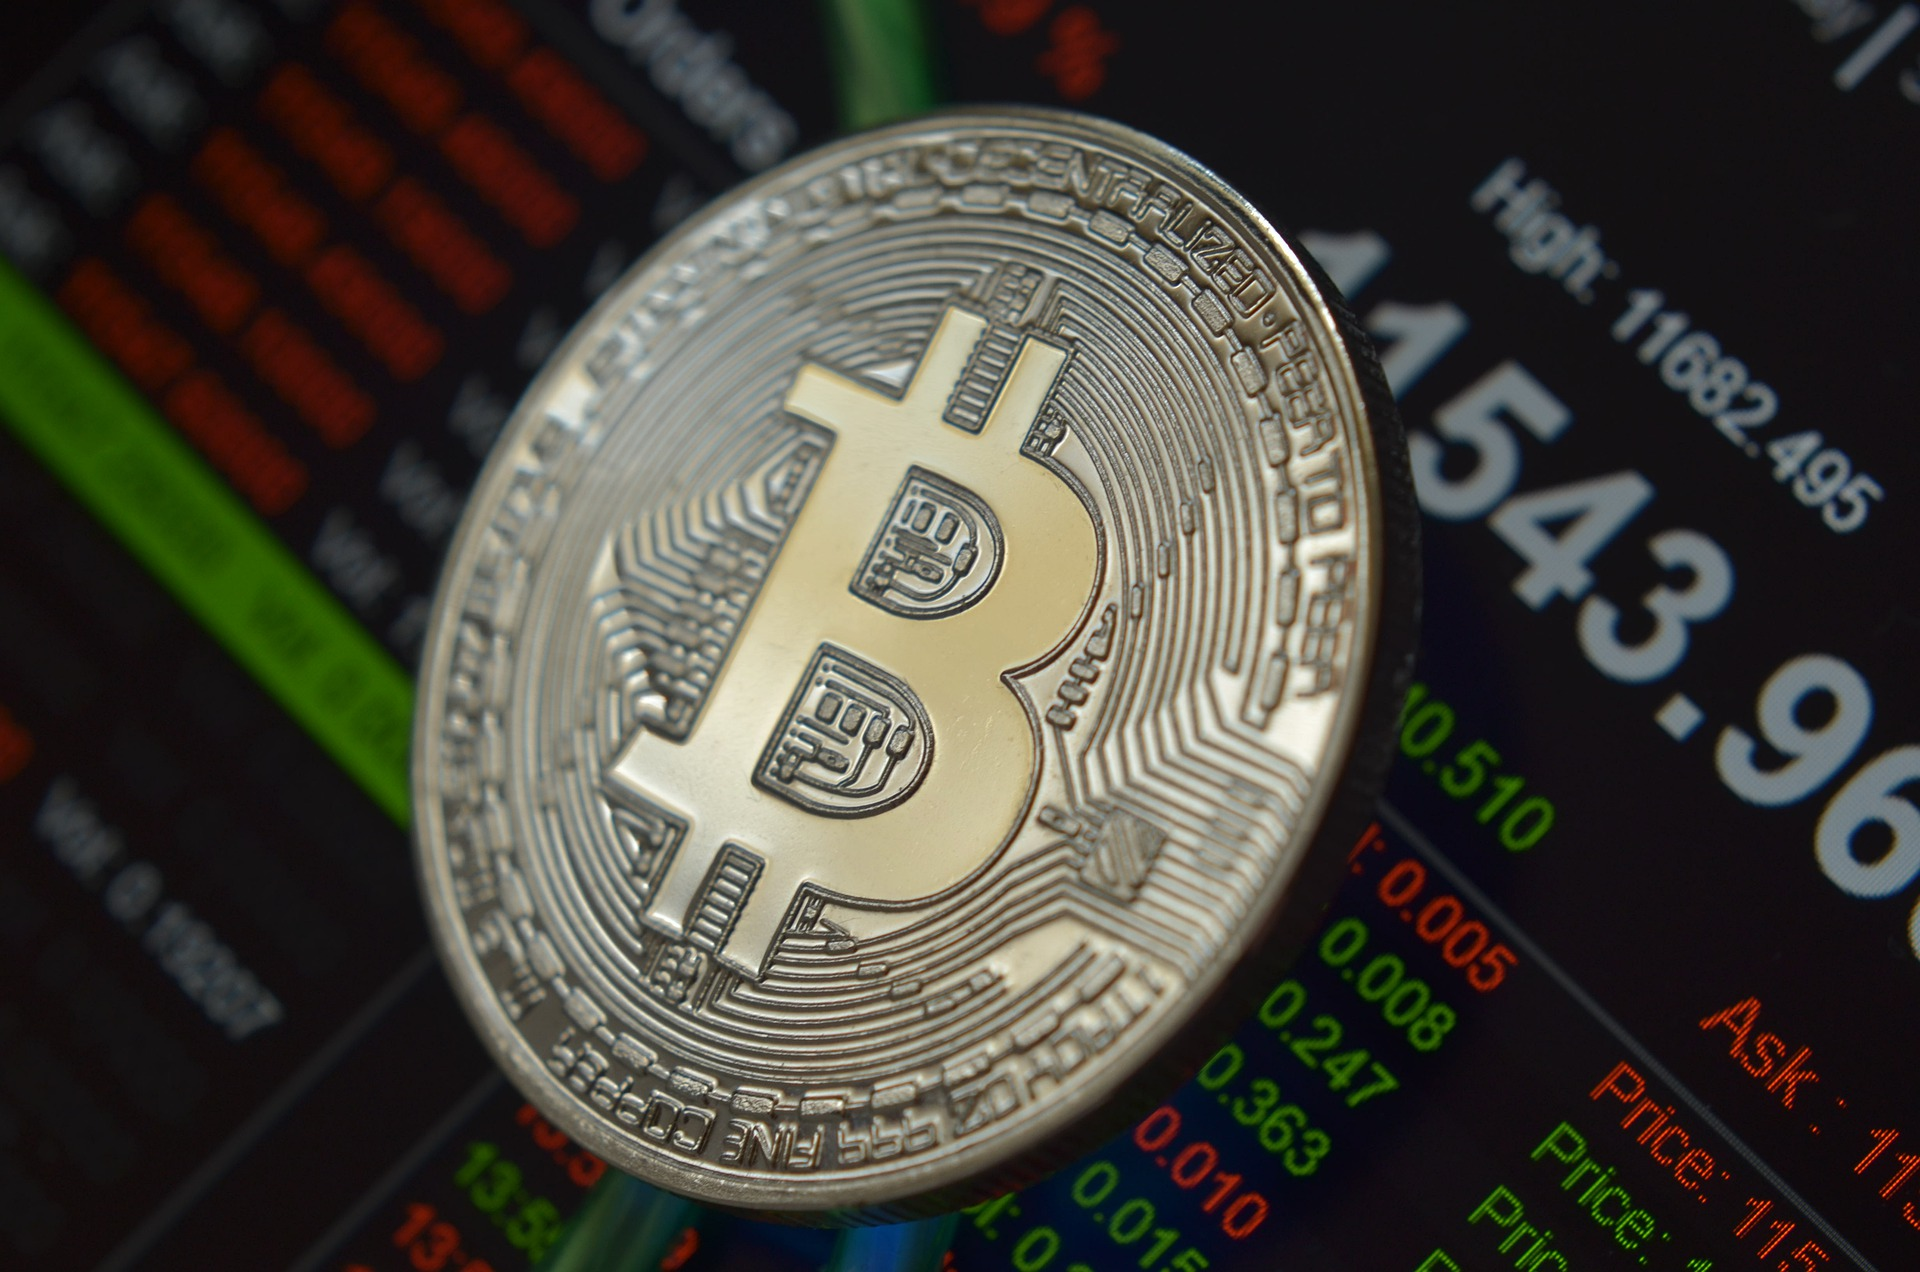 Bitcoin Price Dropped By 20% Within 24 Hours What's The Reason?